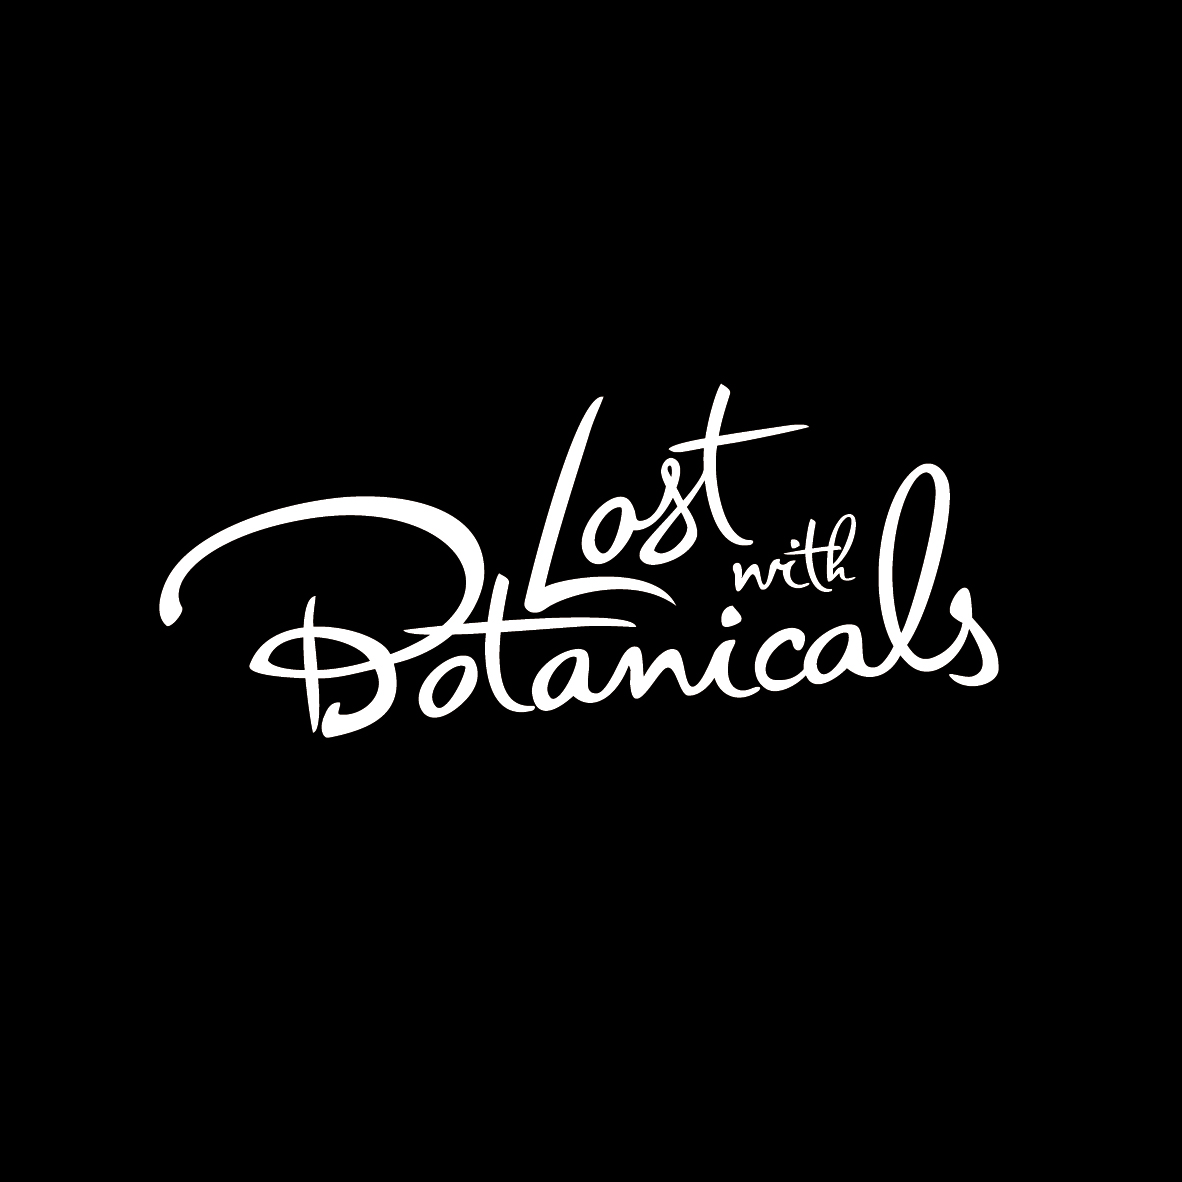 Lost with Botanicals